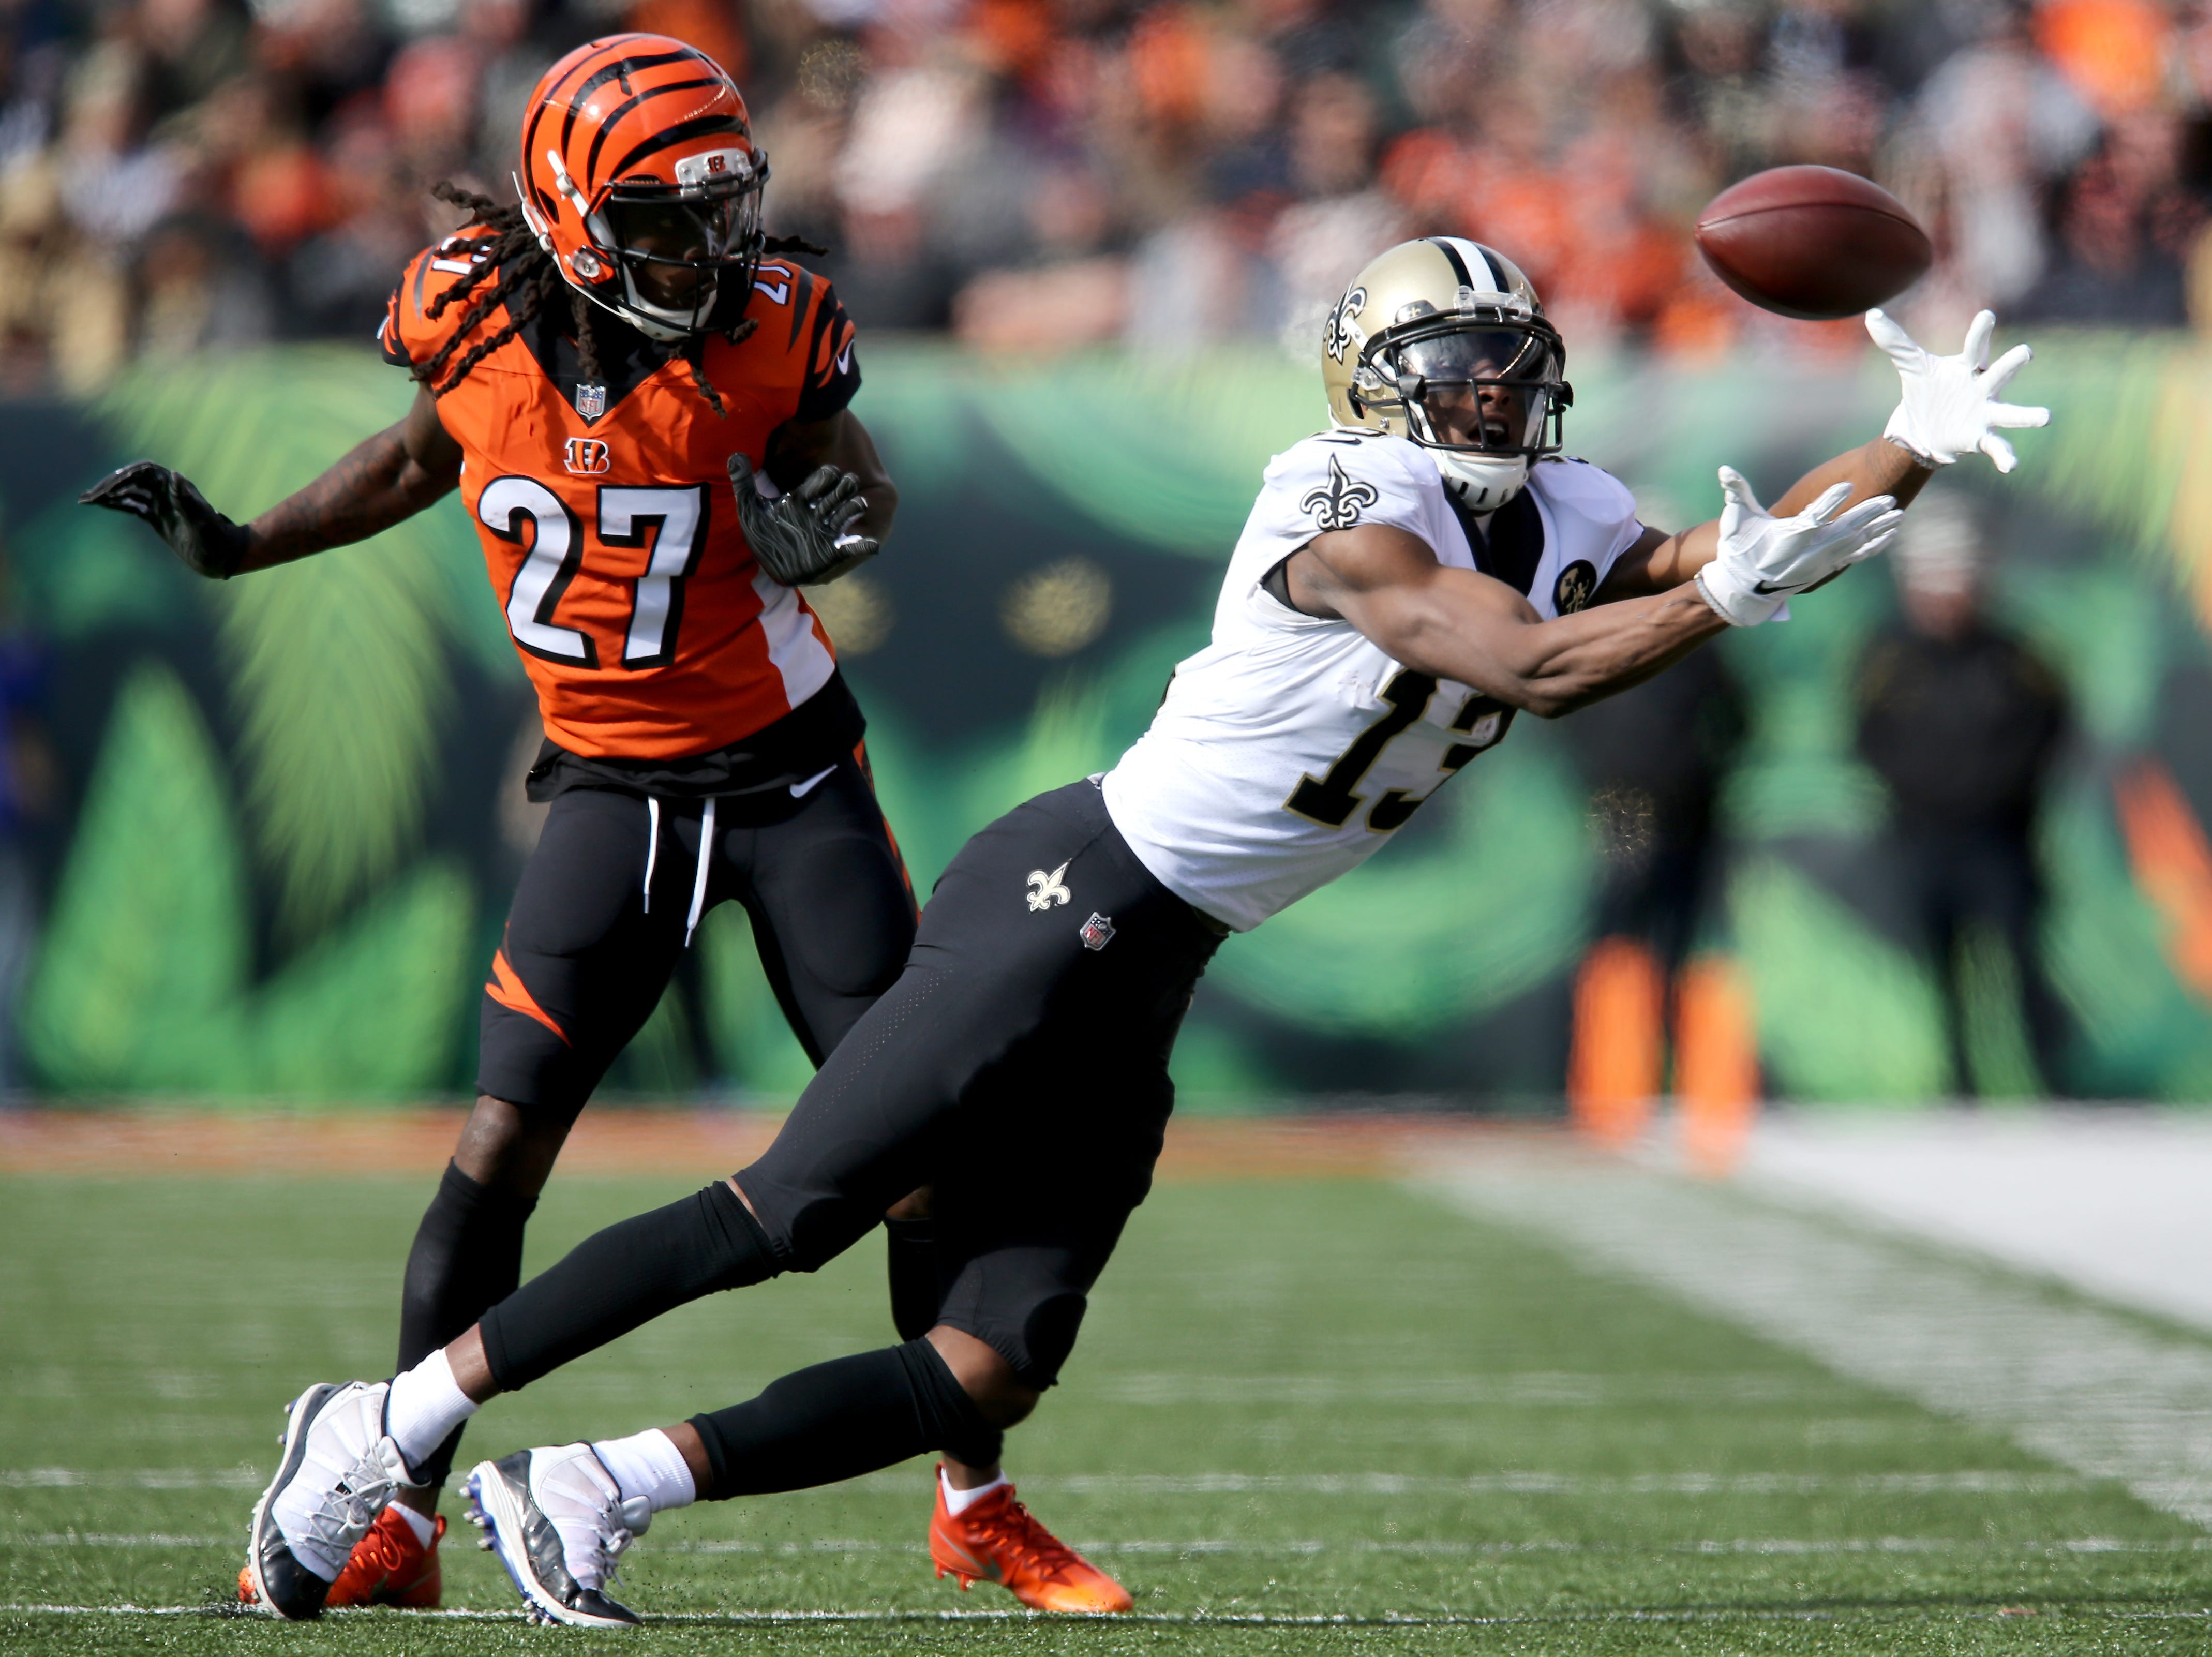 New Orleans Saints wide receiver Michael Thomas (13) reaches for a reception as Cincinnati Bengals cornerback Dre Kirkpatrick (27) is called for pass interference in the second quarter of a Week 10 NFL game between the New Orleans Saints and the Cincinnati Bengals, Sunday, Nov. 11, 2018, at Paul Brown Stadium in Cincinnati.